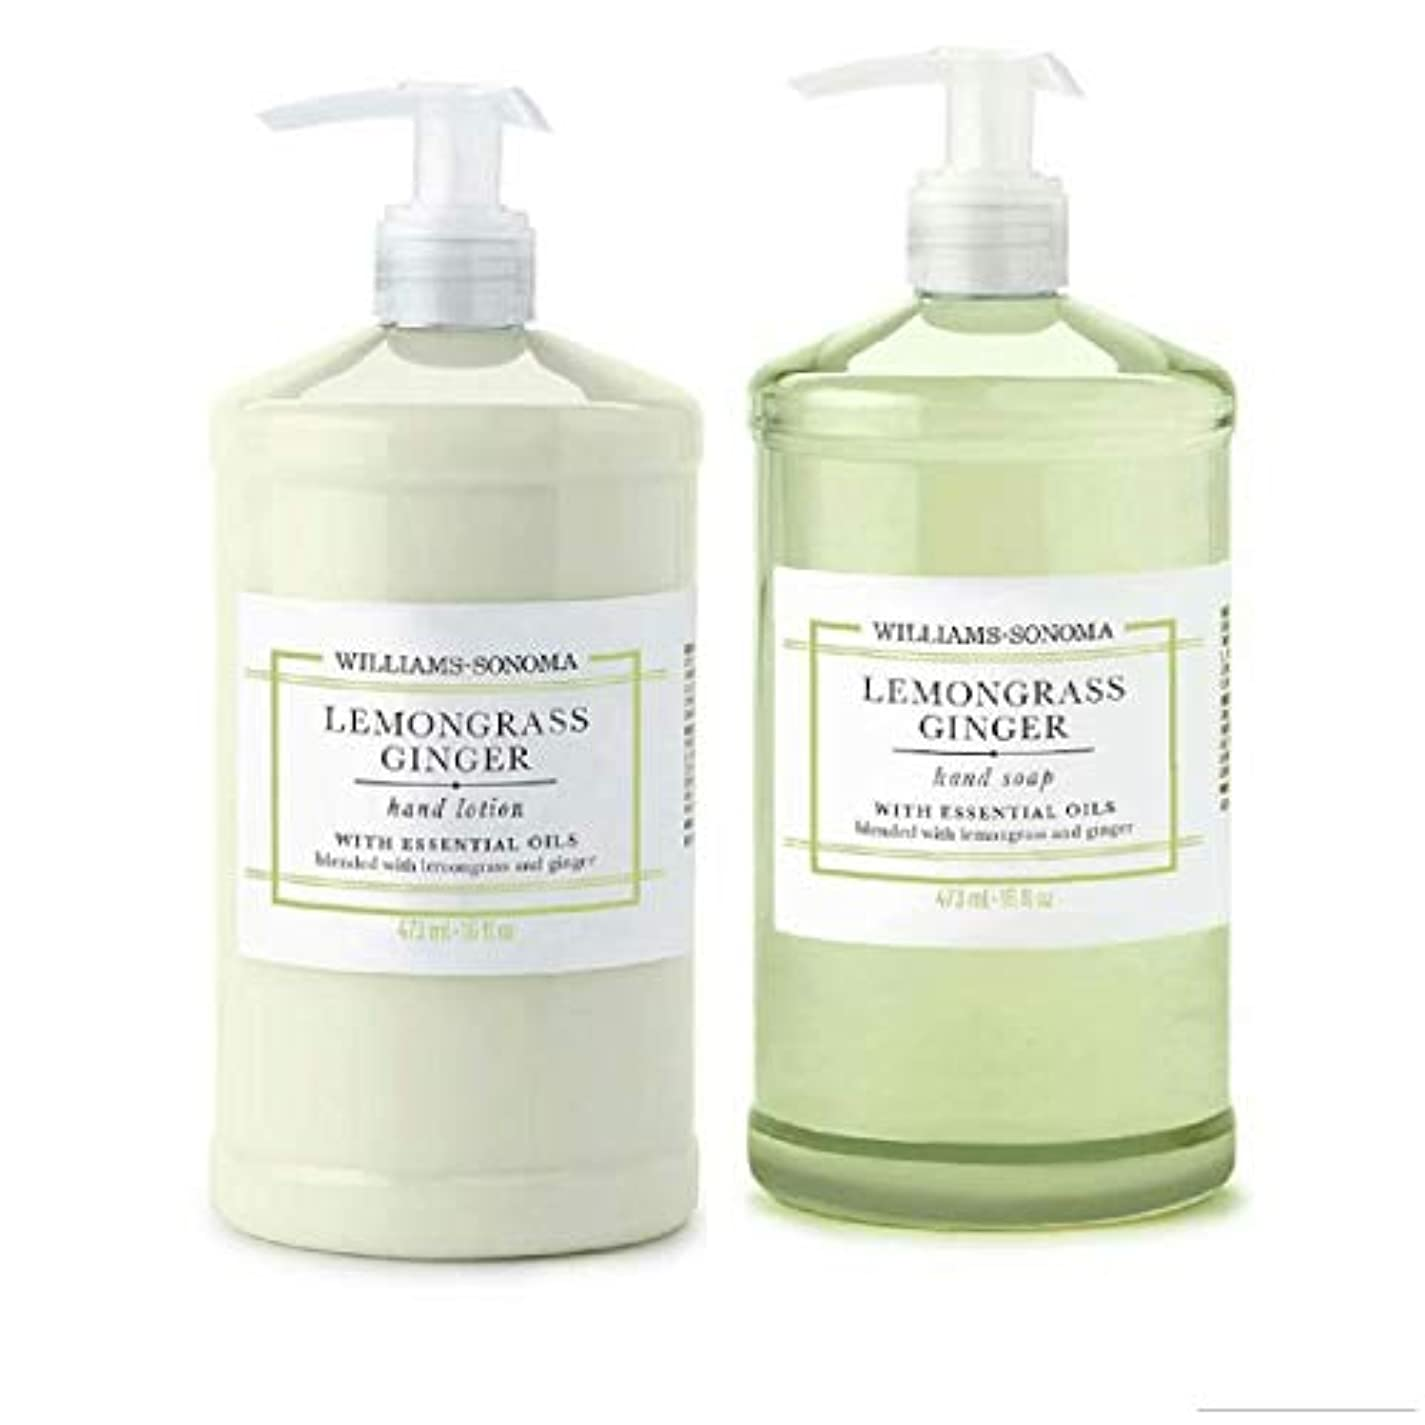 評価するペンスカーフWilliams Sonoma Lemongrass Ginger Hand Soap and Hand Lotion 16 oz each [並行輸入品]